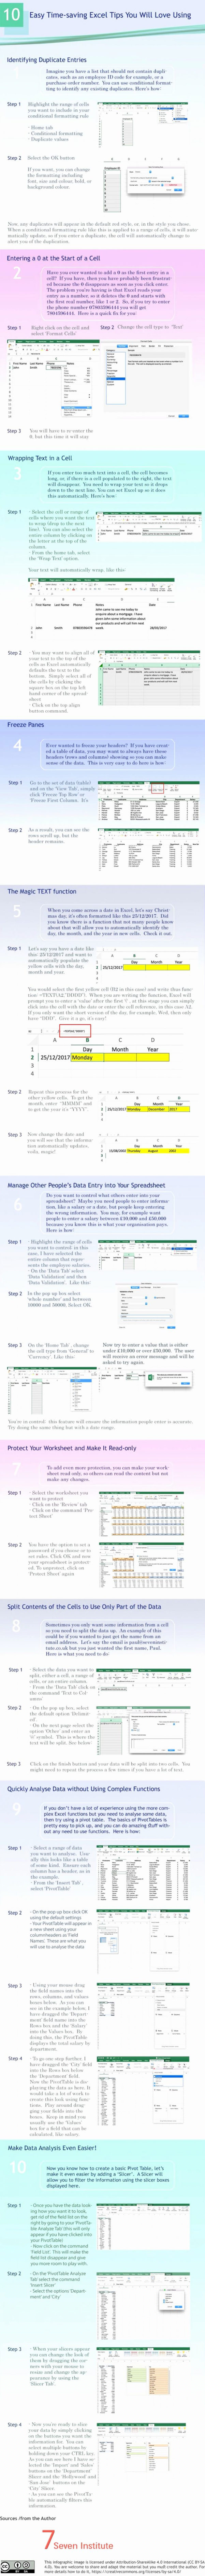 Spreadsheet Tools For Engineers Using Excel 2007 Solutions Manual Pdf With Regard To Spreadsheet Tools For Engineers Using Excel Free Download